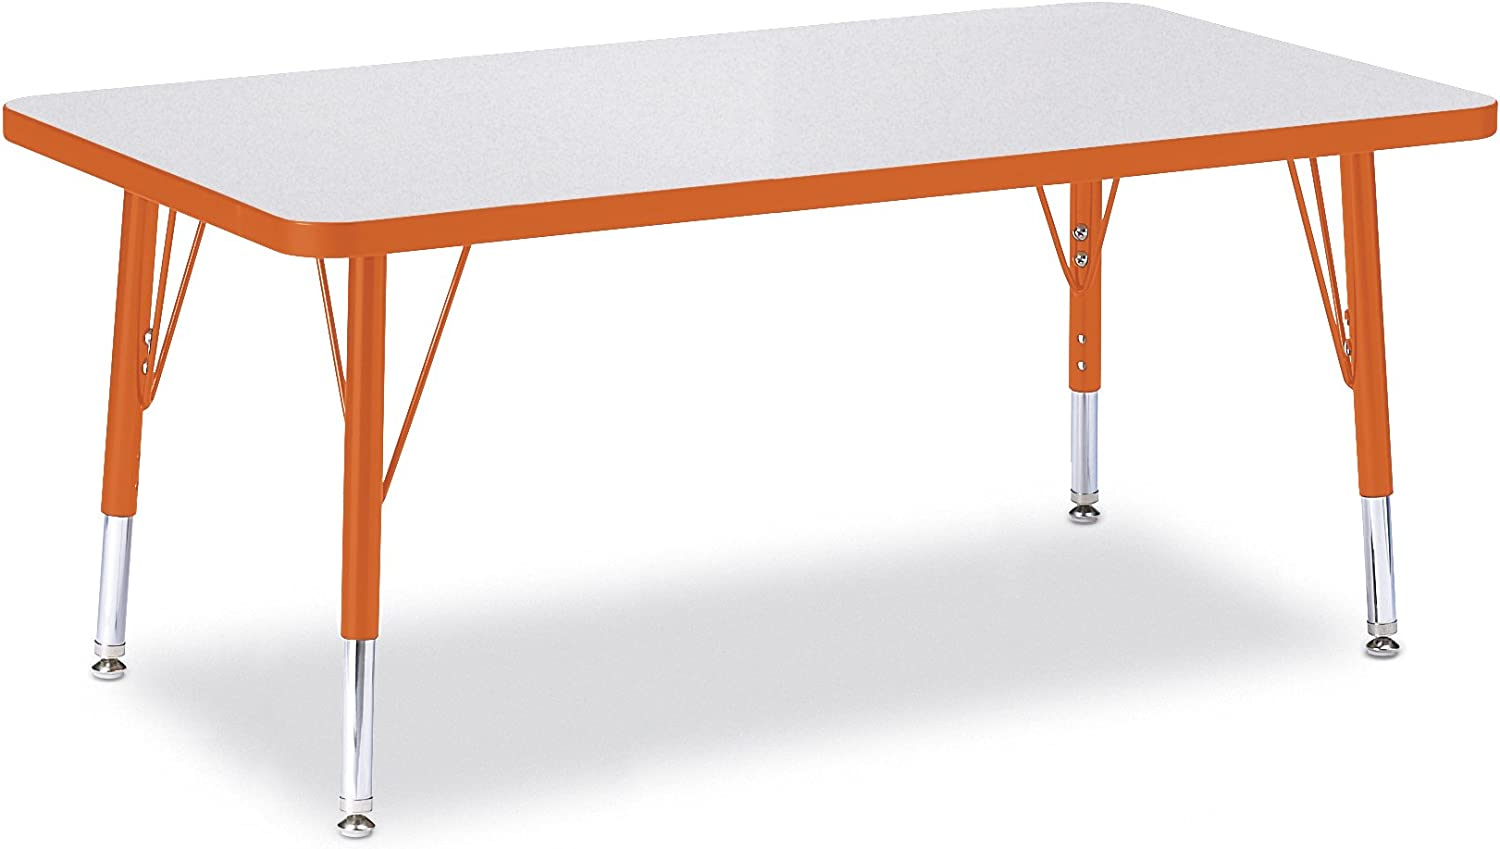 T-Height Berries 6403JCT251 Rectangle Activity Table Maple//Maple//Camel 24 x 48